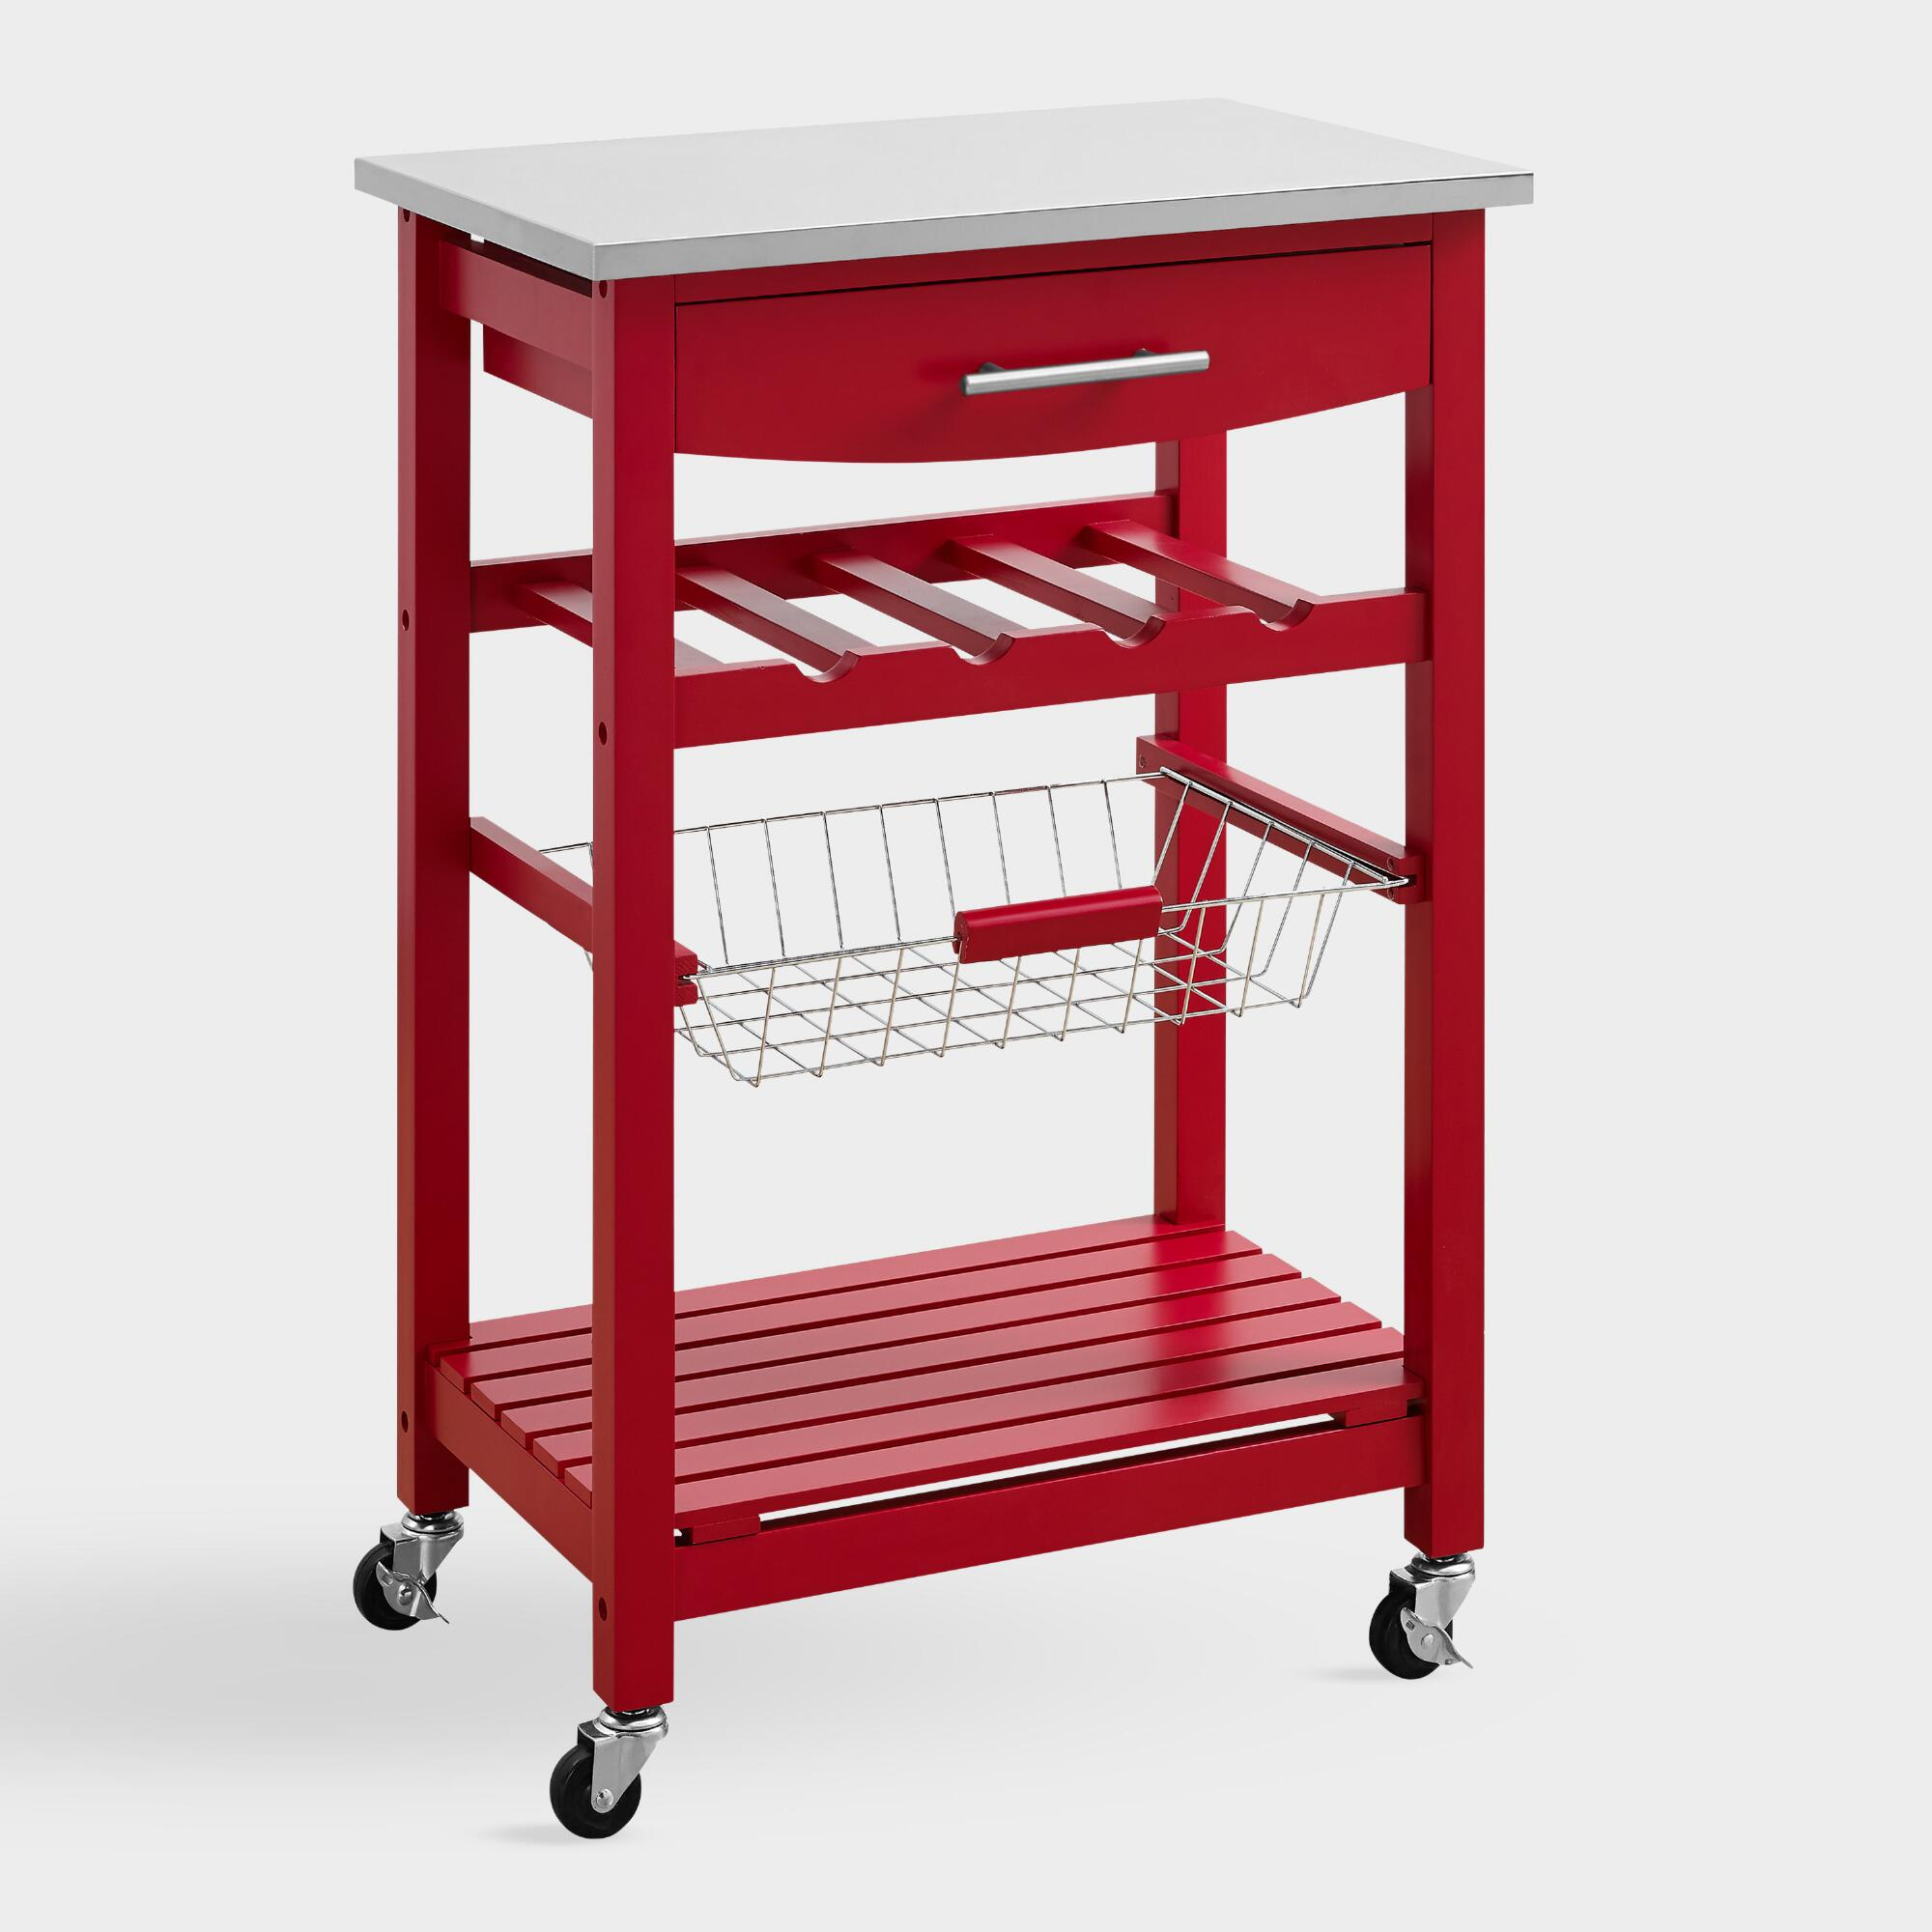 Red Wood and Stainless Steel Grover Kitchen Island by World Market